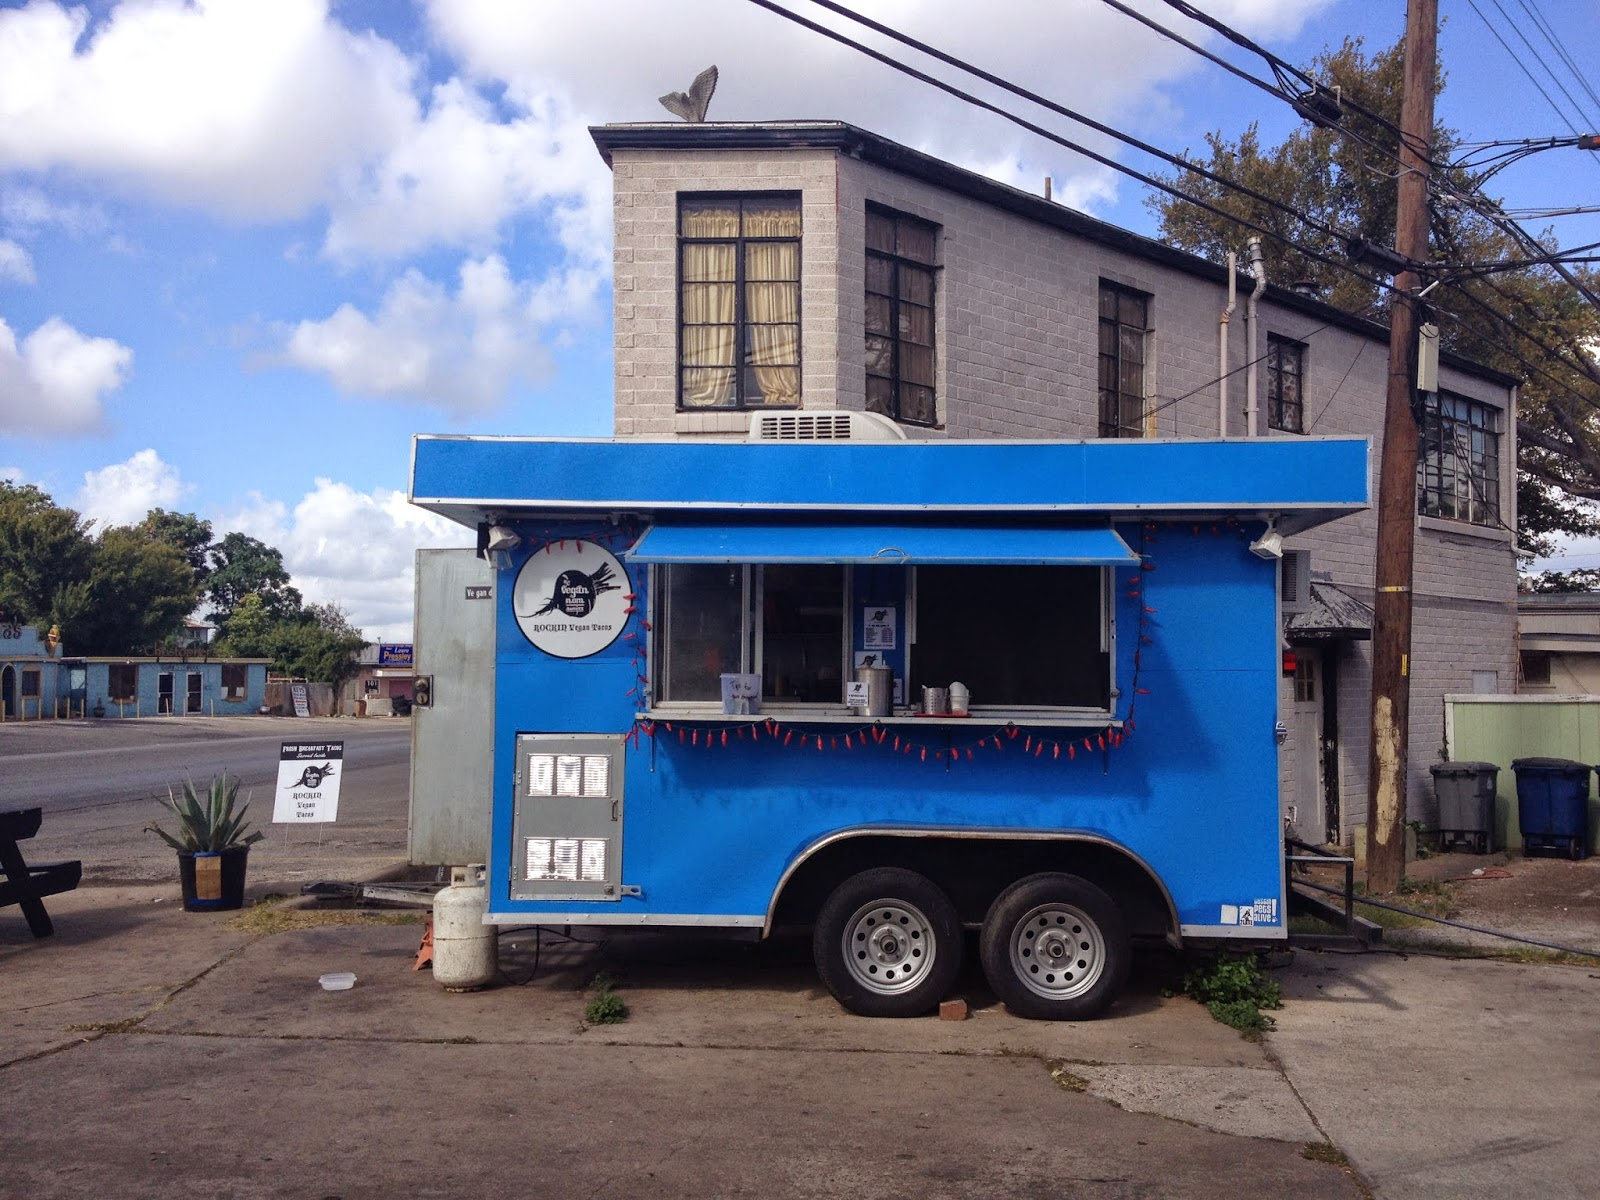 a tour of austin in food trucks.